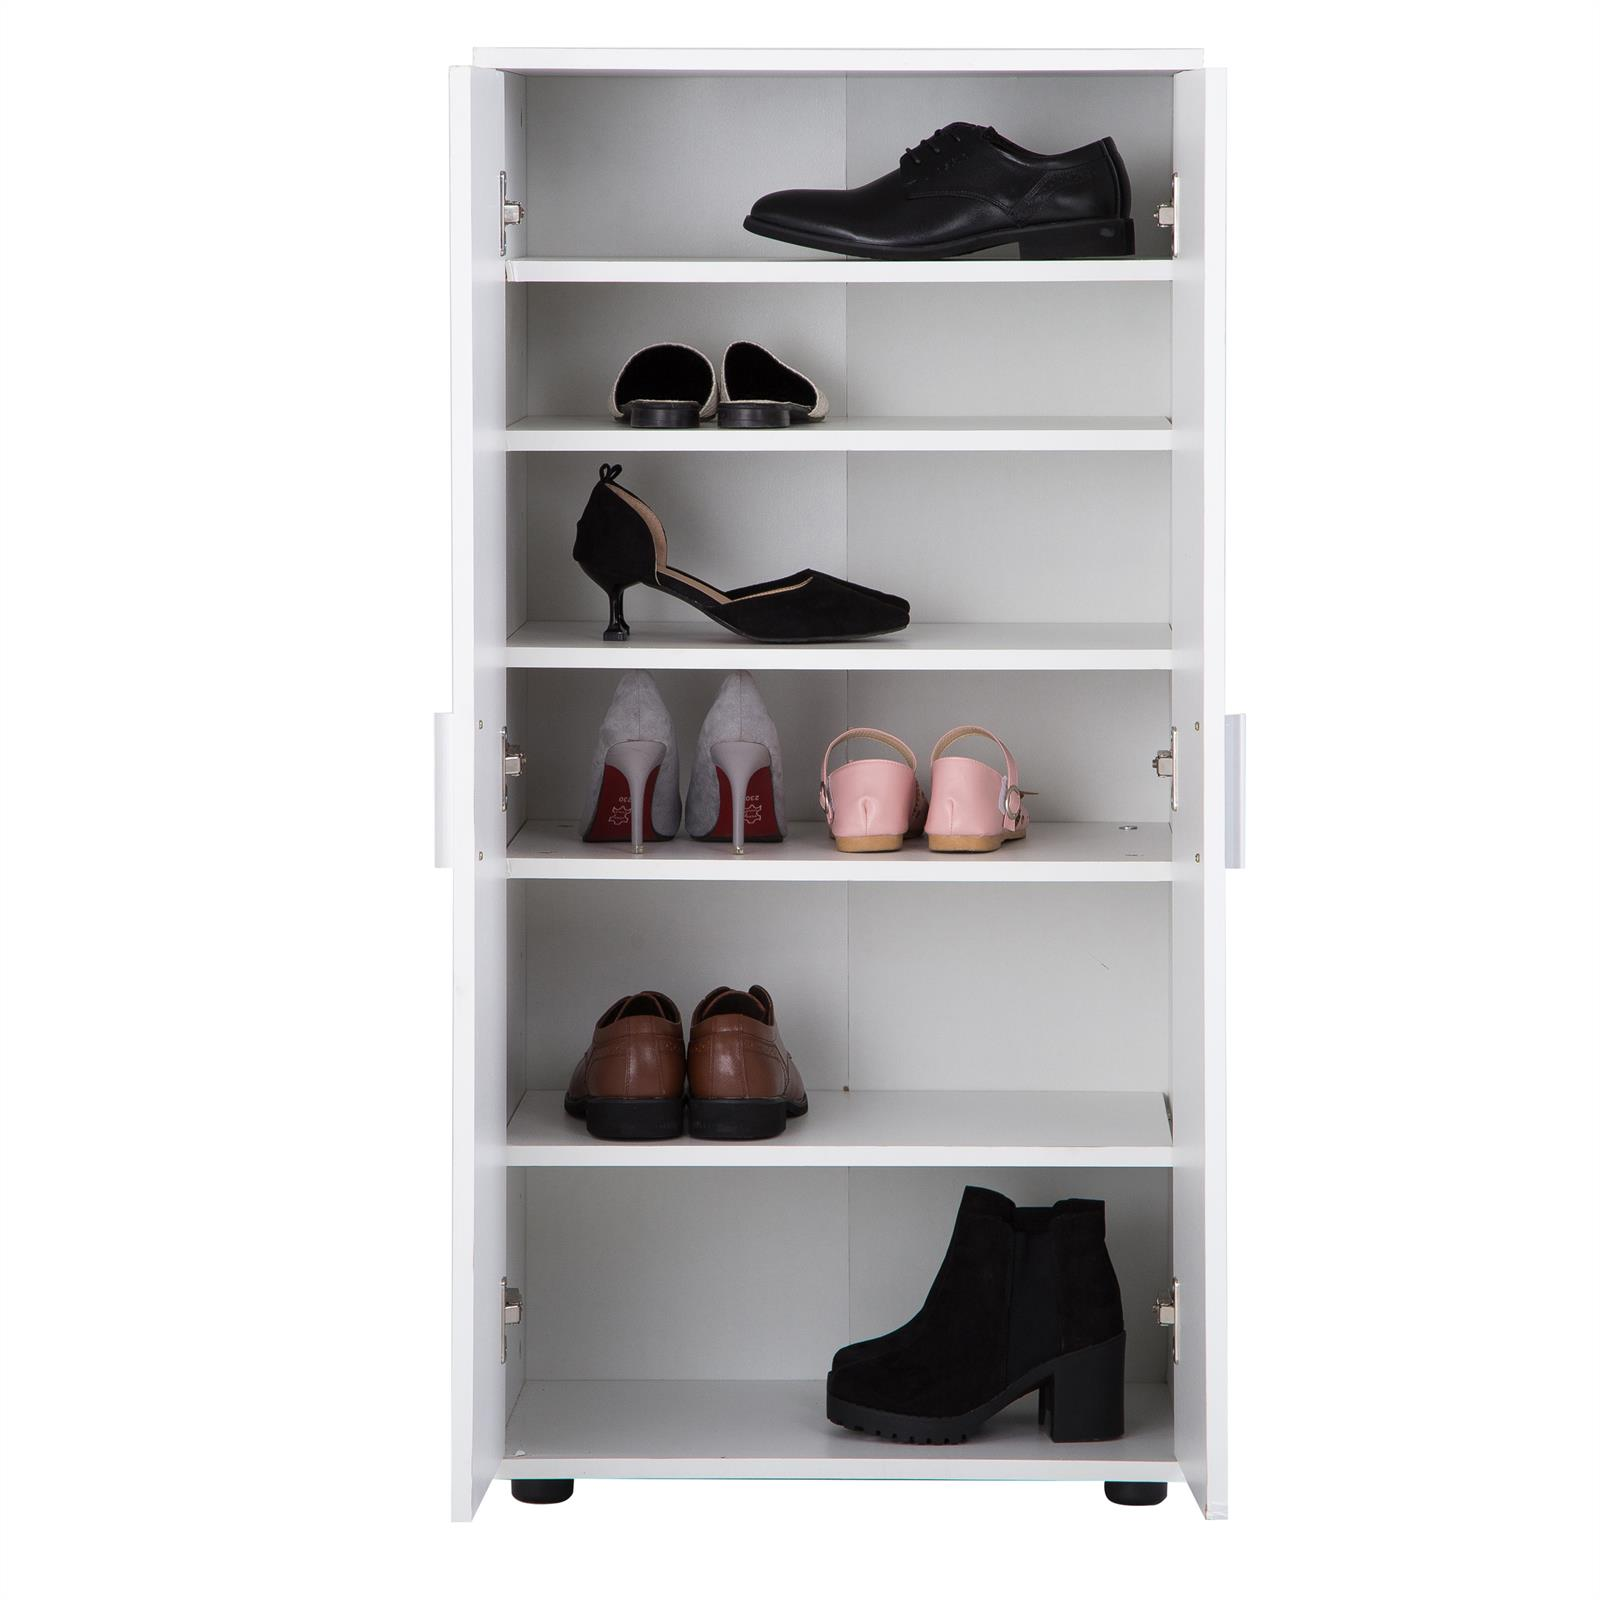 schuhschrank schuhregal kommode aufbewahrung diele flur 55cm breit 2 t ren ebay. Black Bedroom Furniture Sets. Home Design Ideas